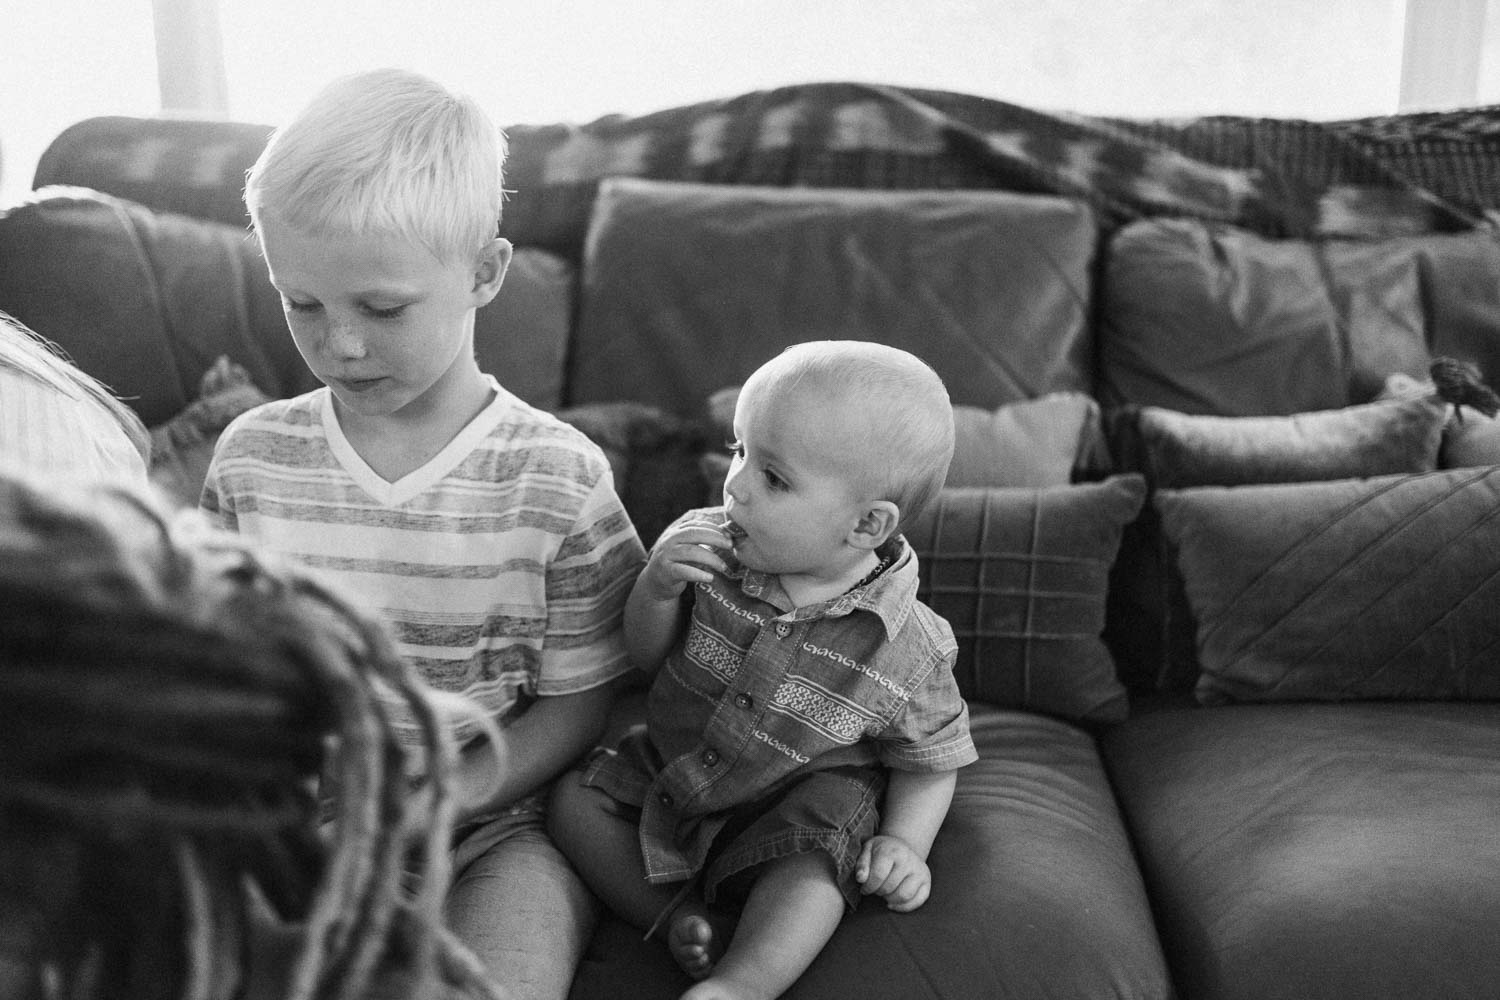 candid-black-and-white-photo-of-brothers-sitting-on-couch-for-story-time-salt-lake-city-utah